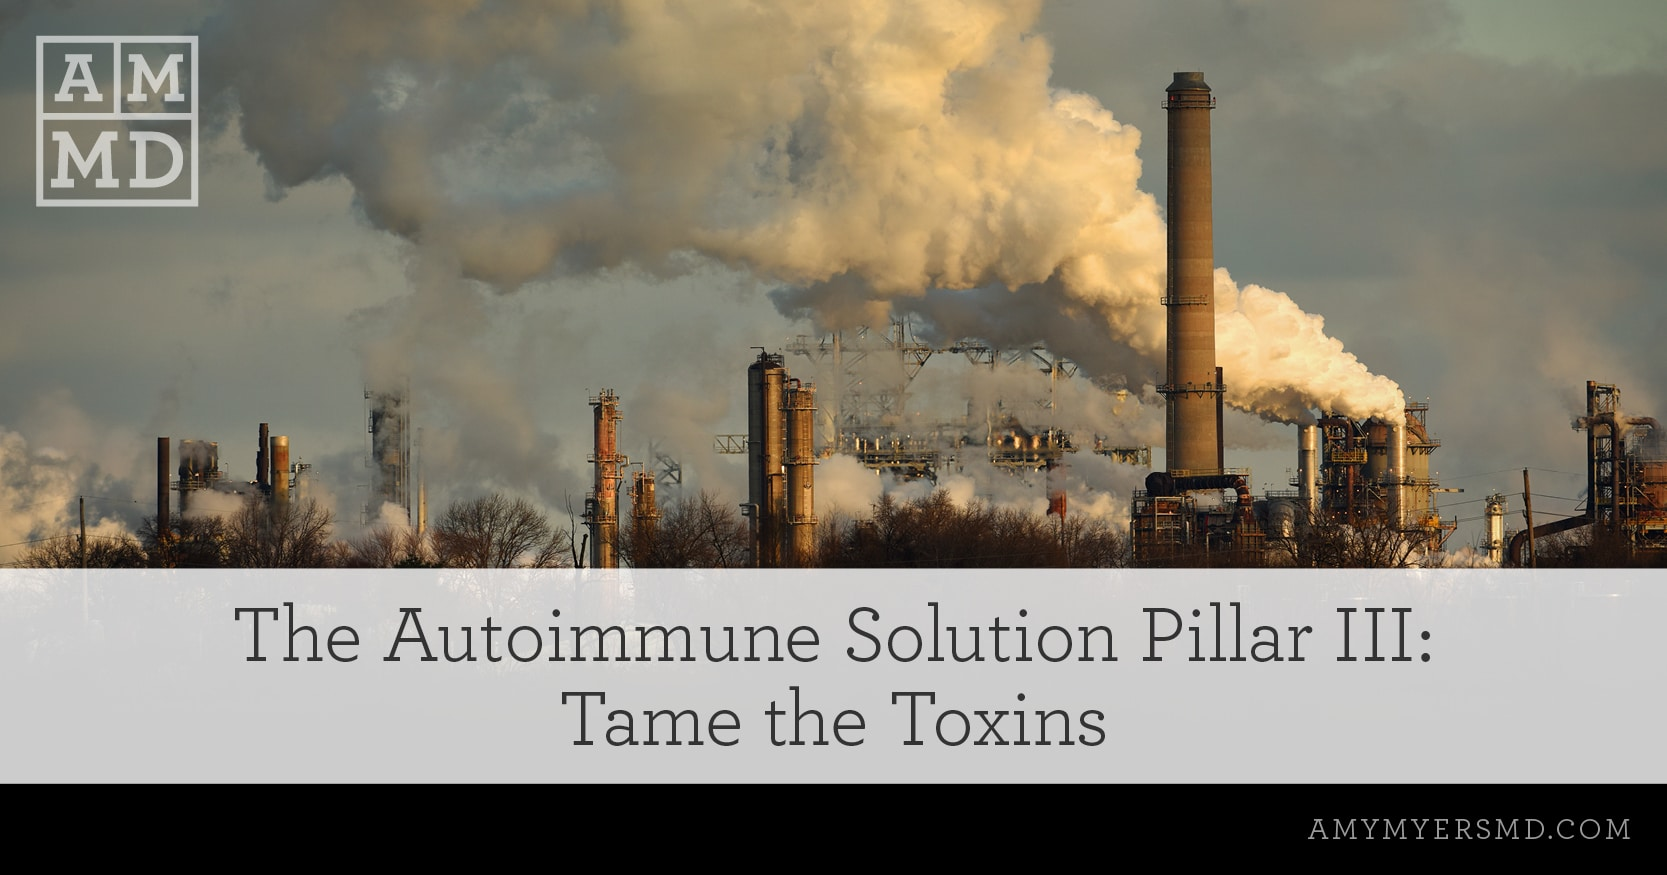 The Autoimmune Solution Pillar III: Tame the Toxins - A Power Plant - Featured Image - Amy Myers MD